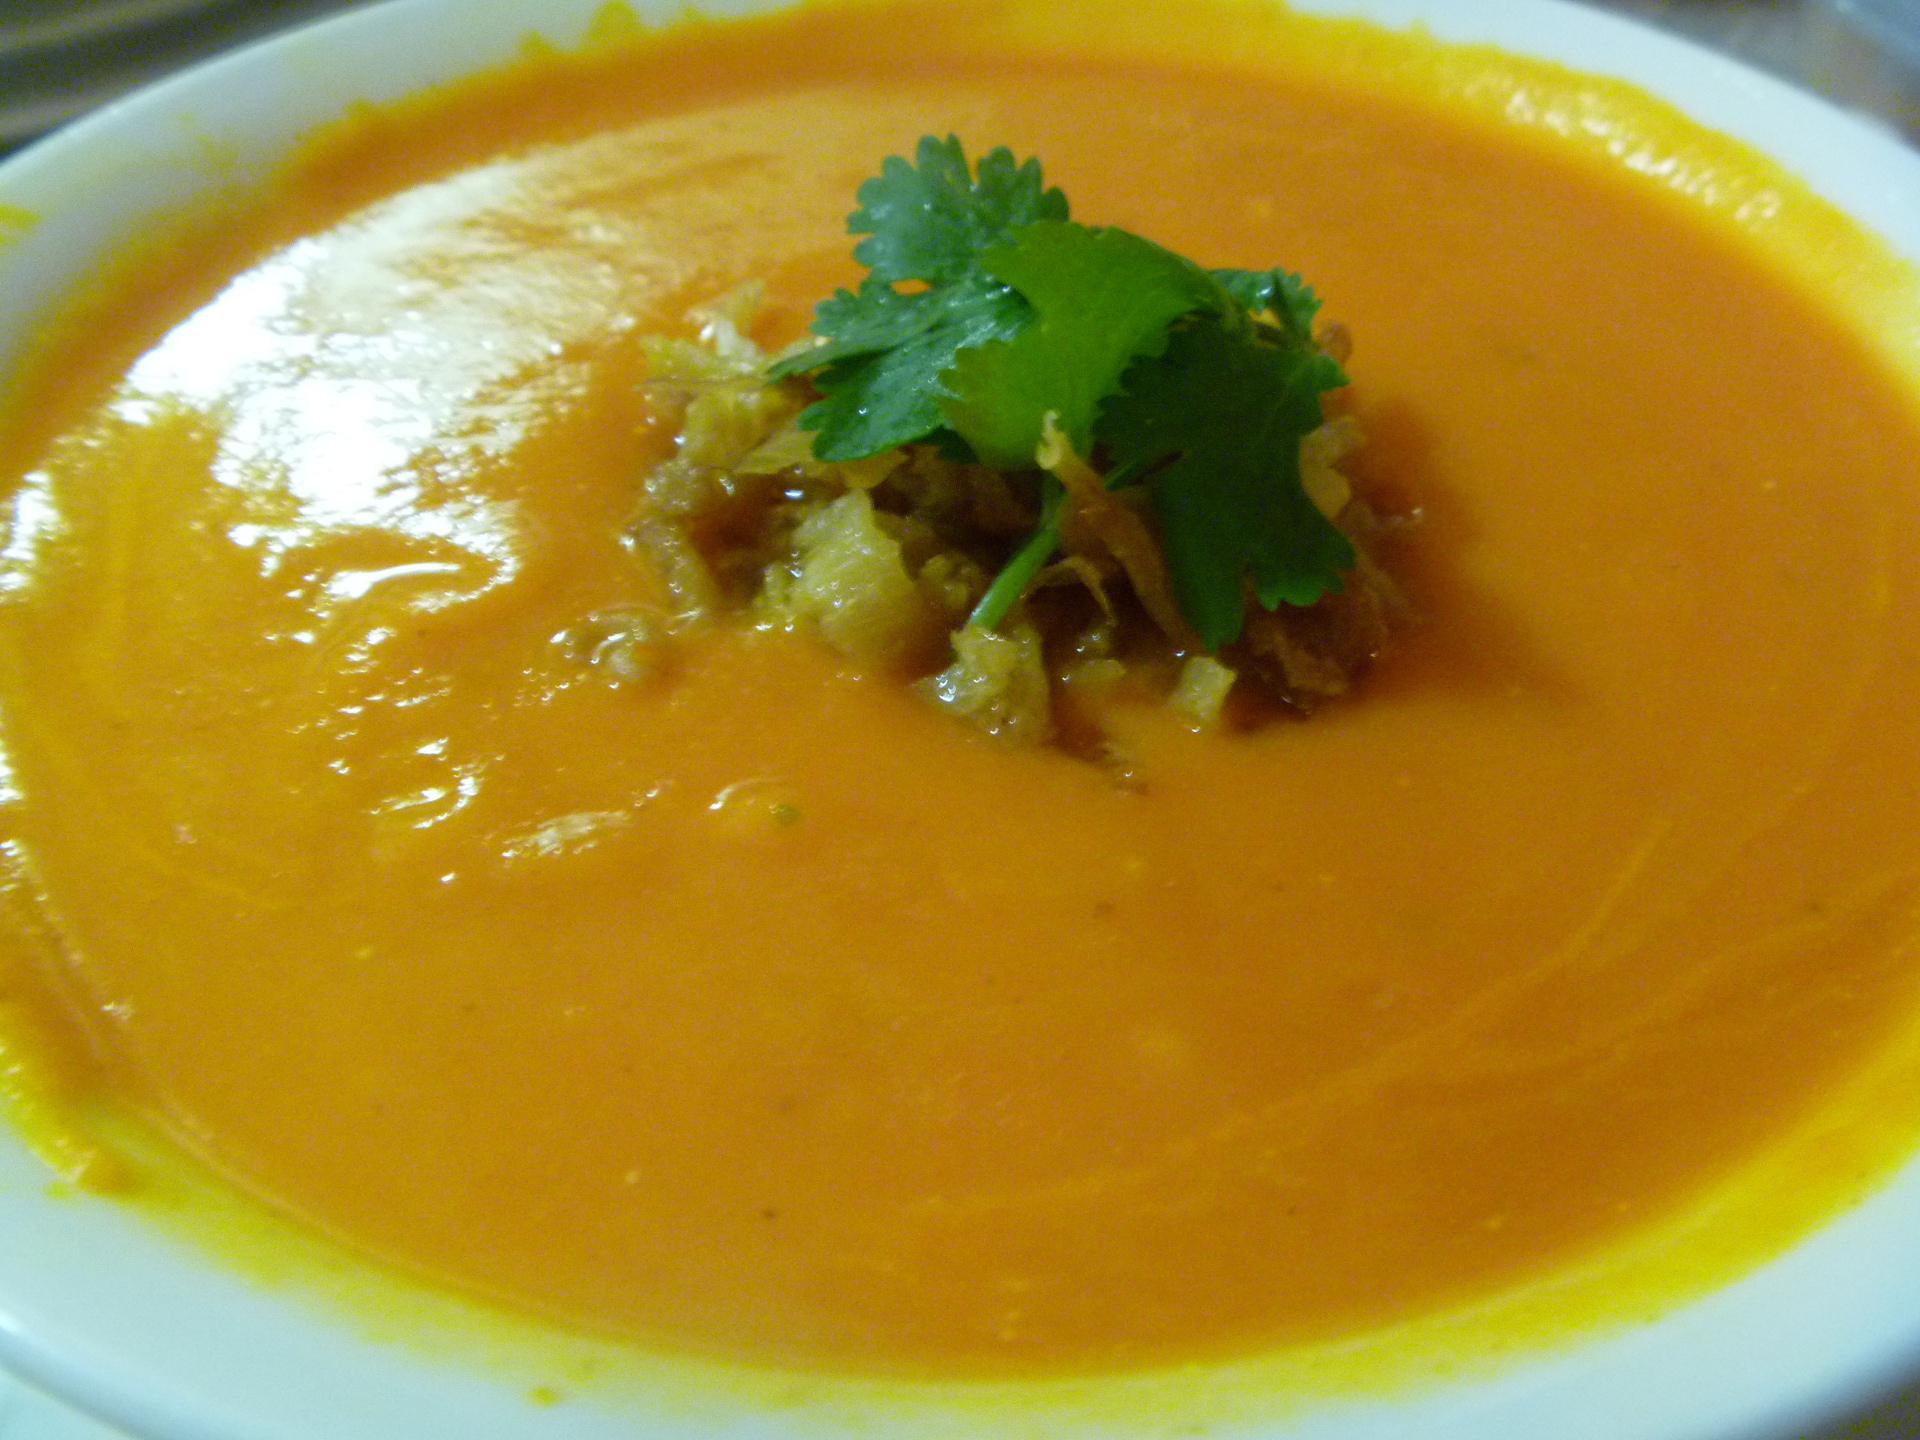 Carrot Beet Soup by Chef Johnna Gale